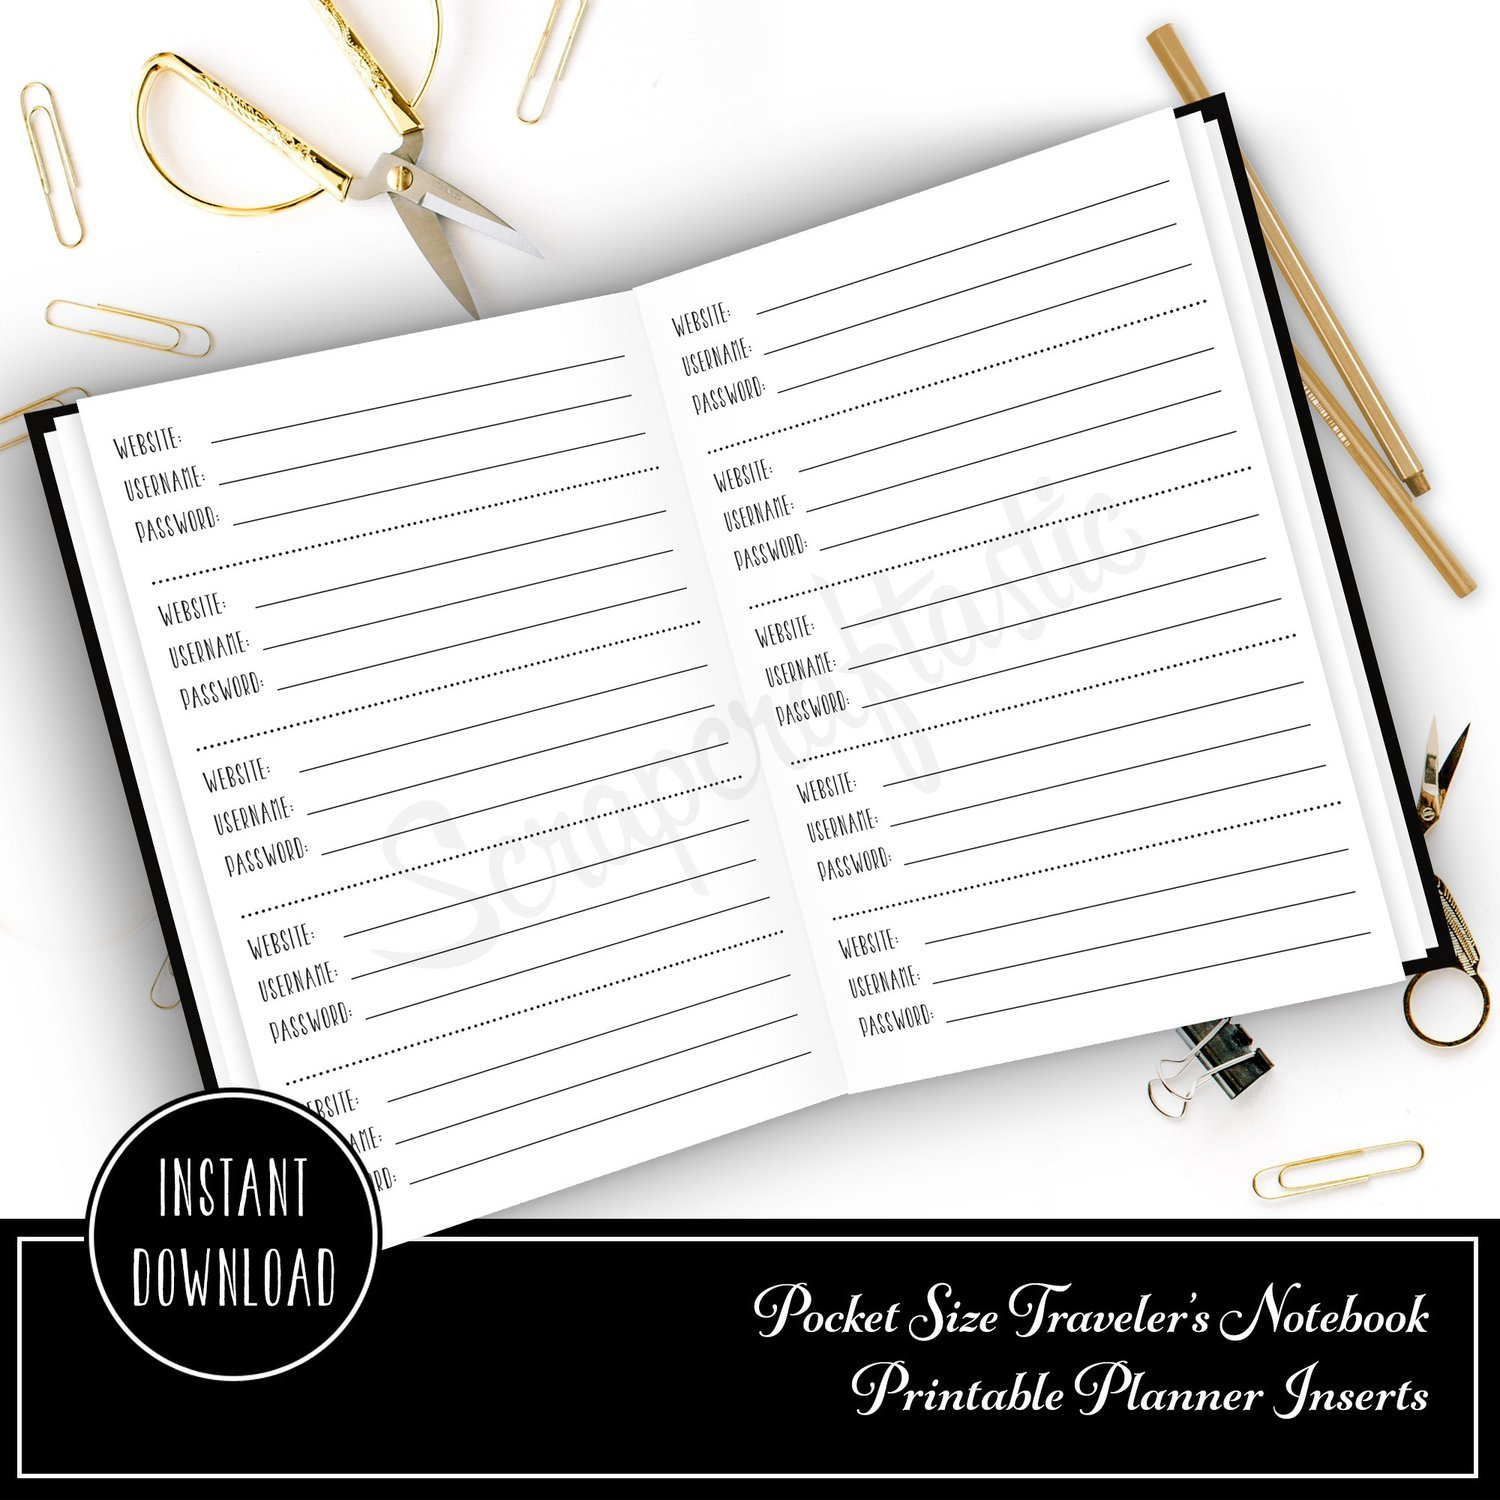 Password Pocket Size Traveler's Notebook Printable Planner Inserts